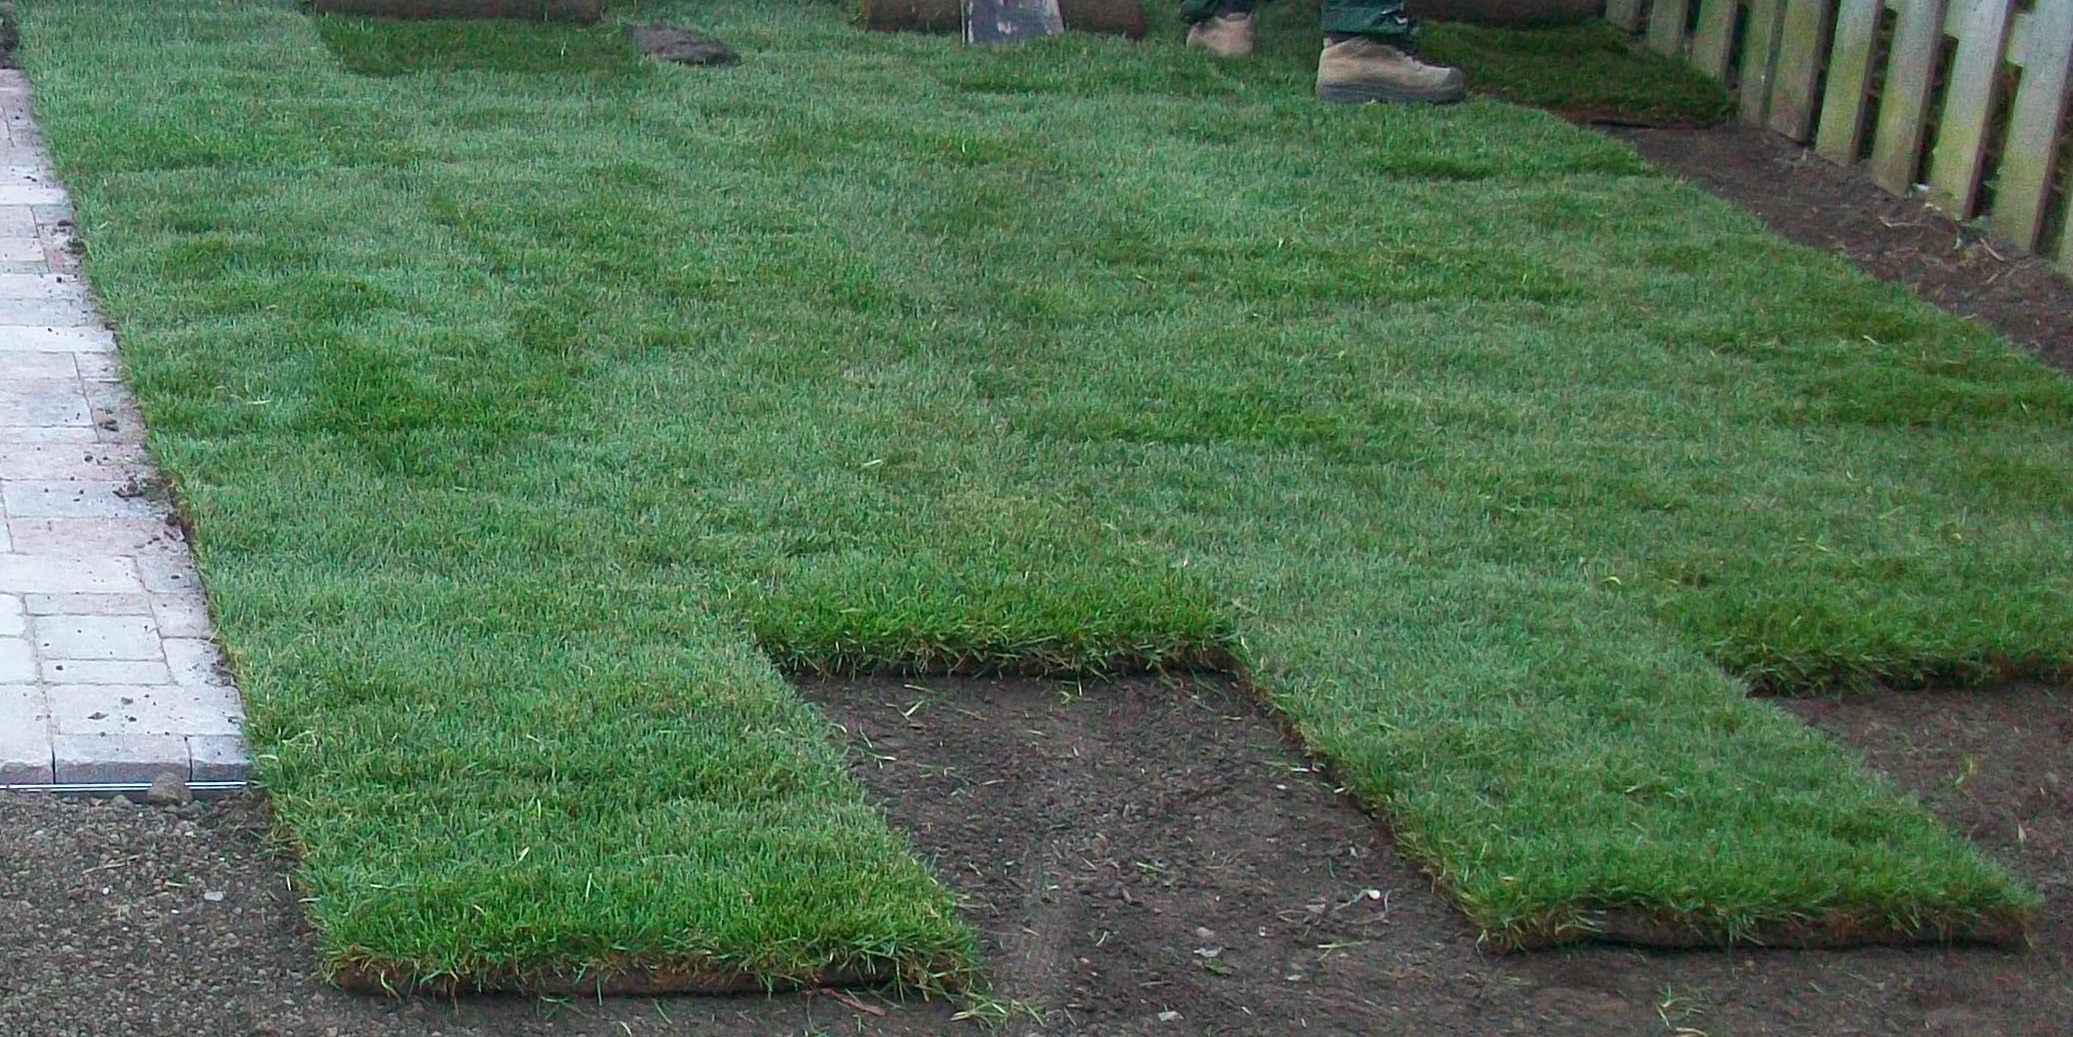 Major lawn repair and can be costly and time consuming.